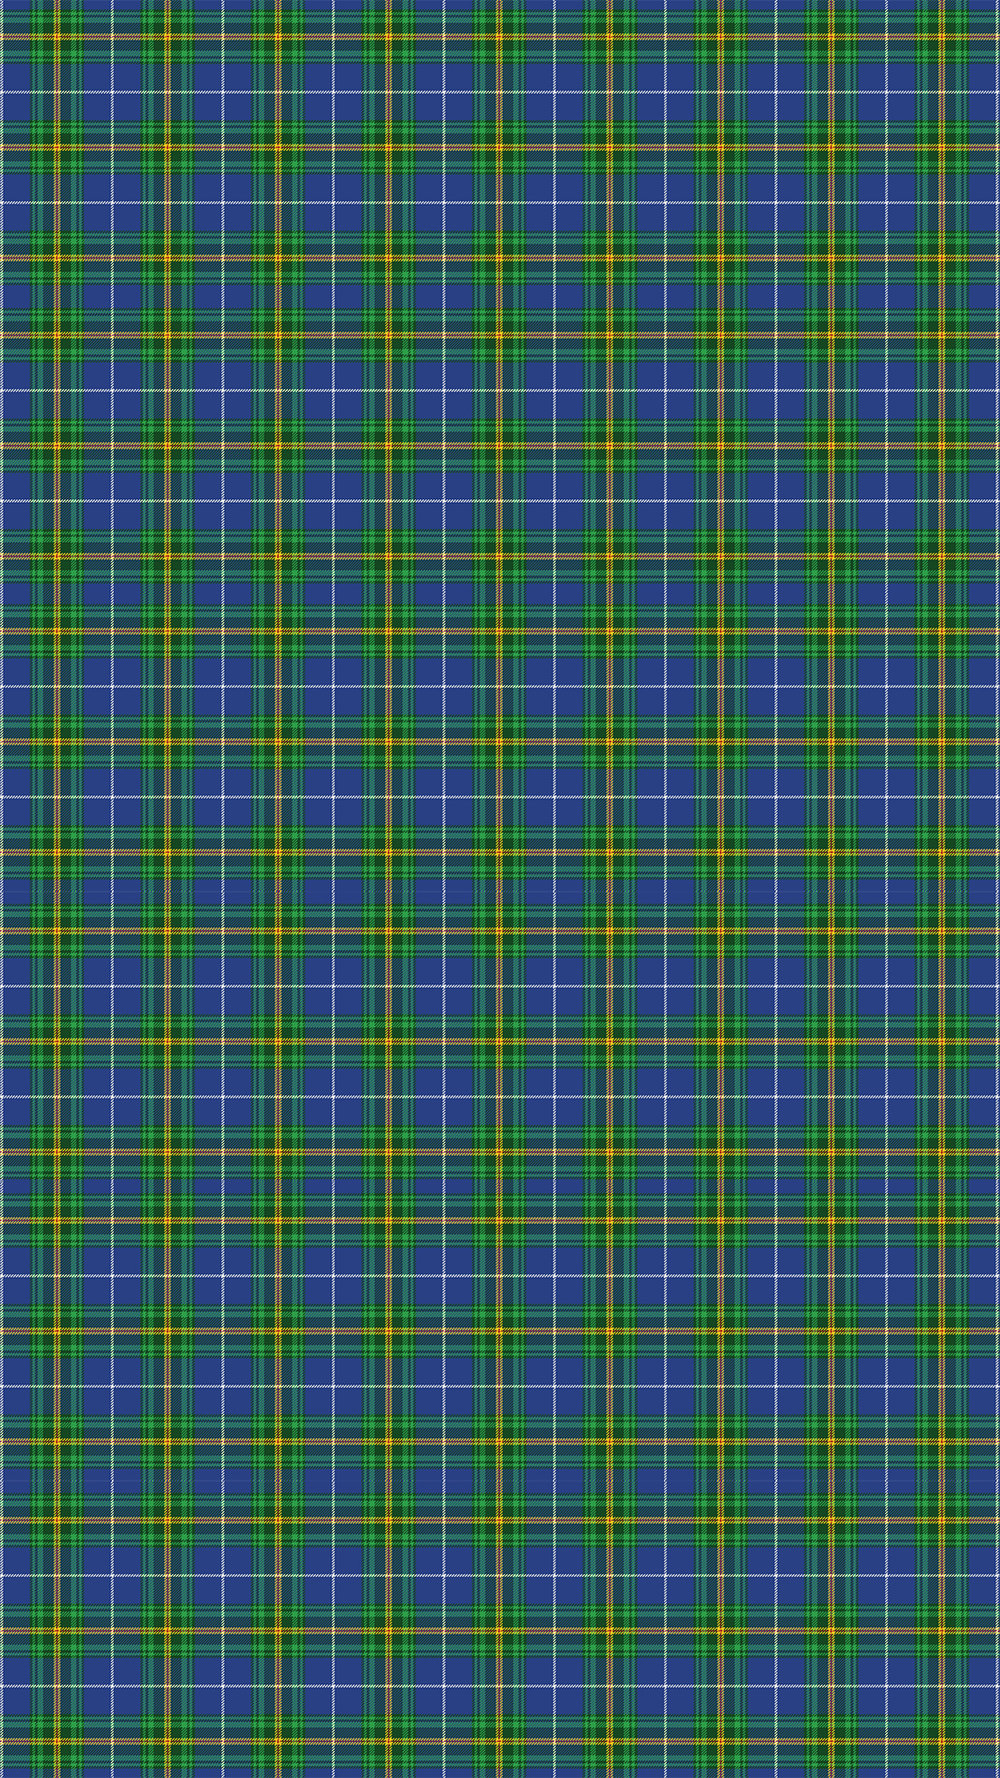 NS Tartan - iphone 6 Plus, 6S Plus, 7 Plus, 8S.jpg